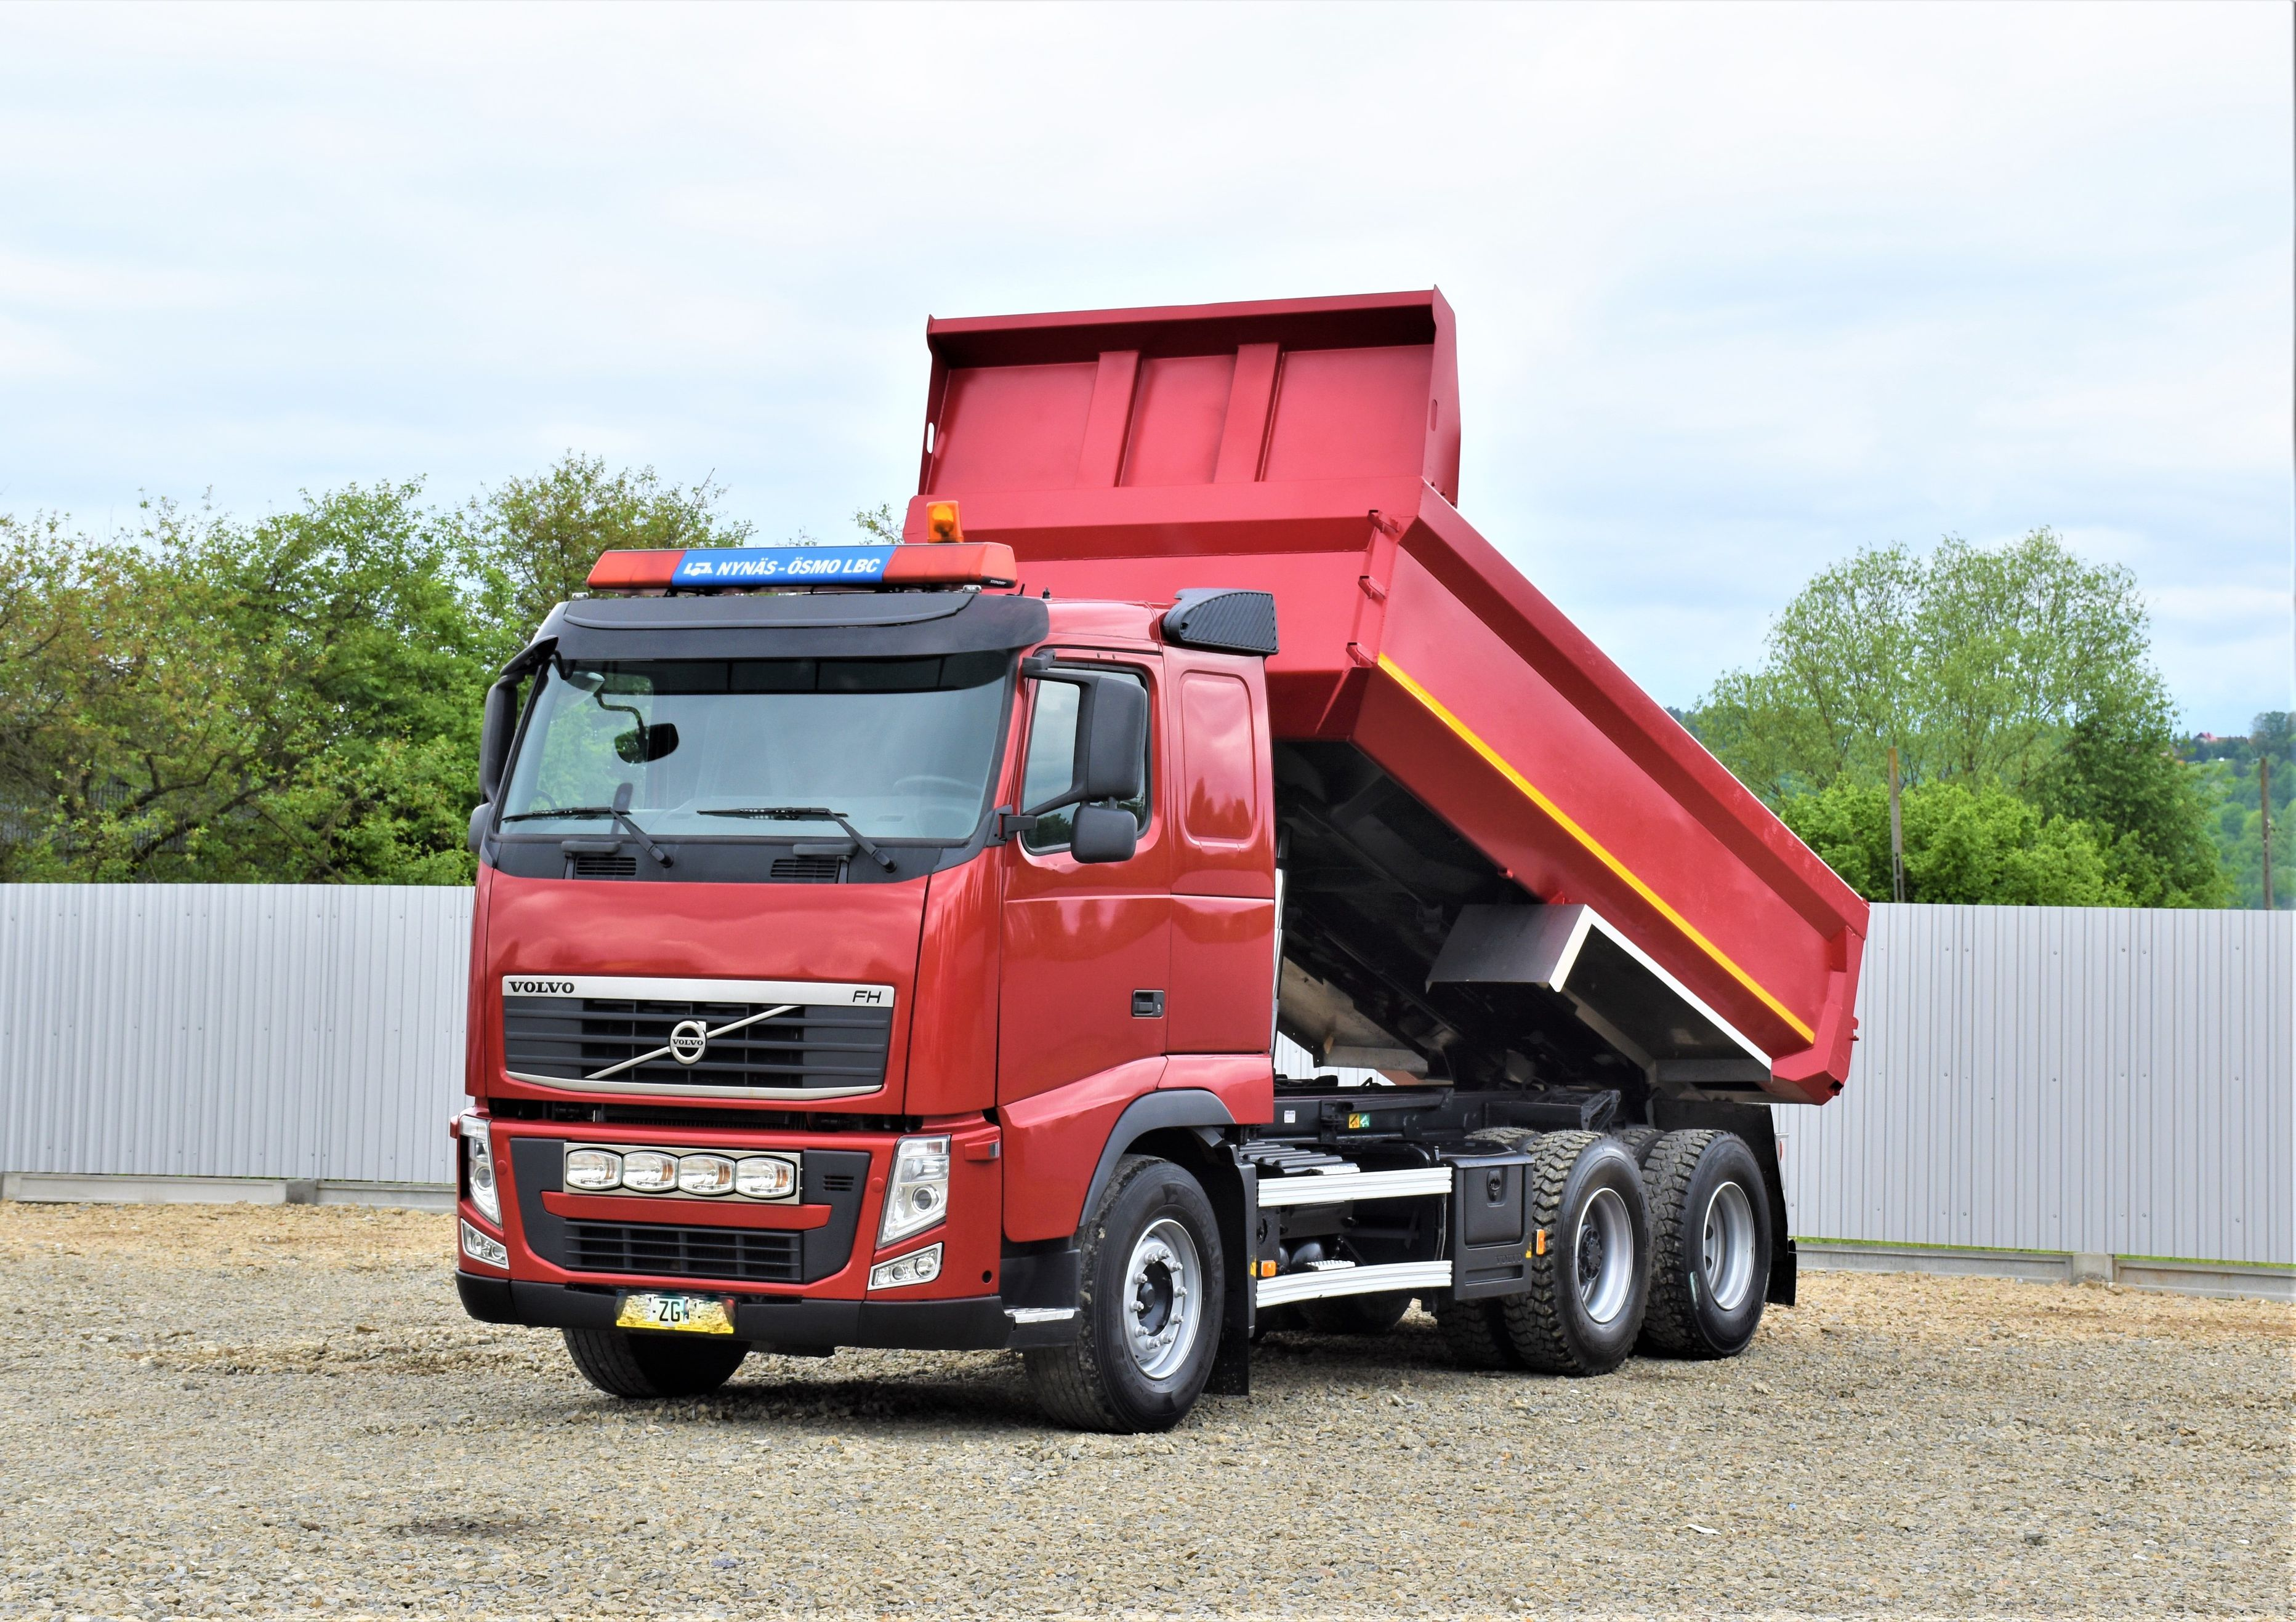 2012-volvo-fh-460-380473-equipment-cover-image